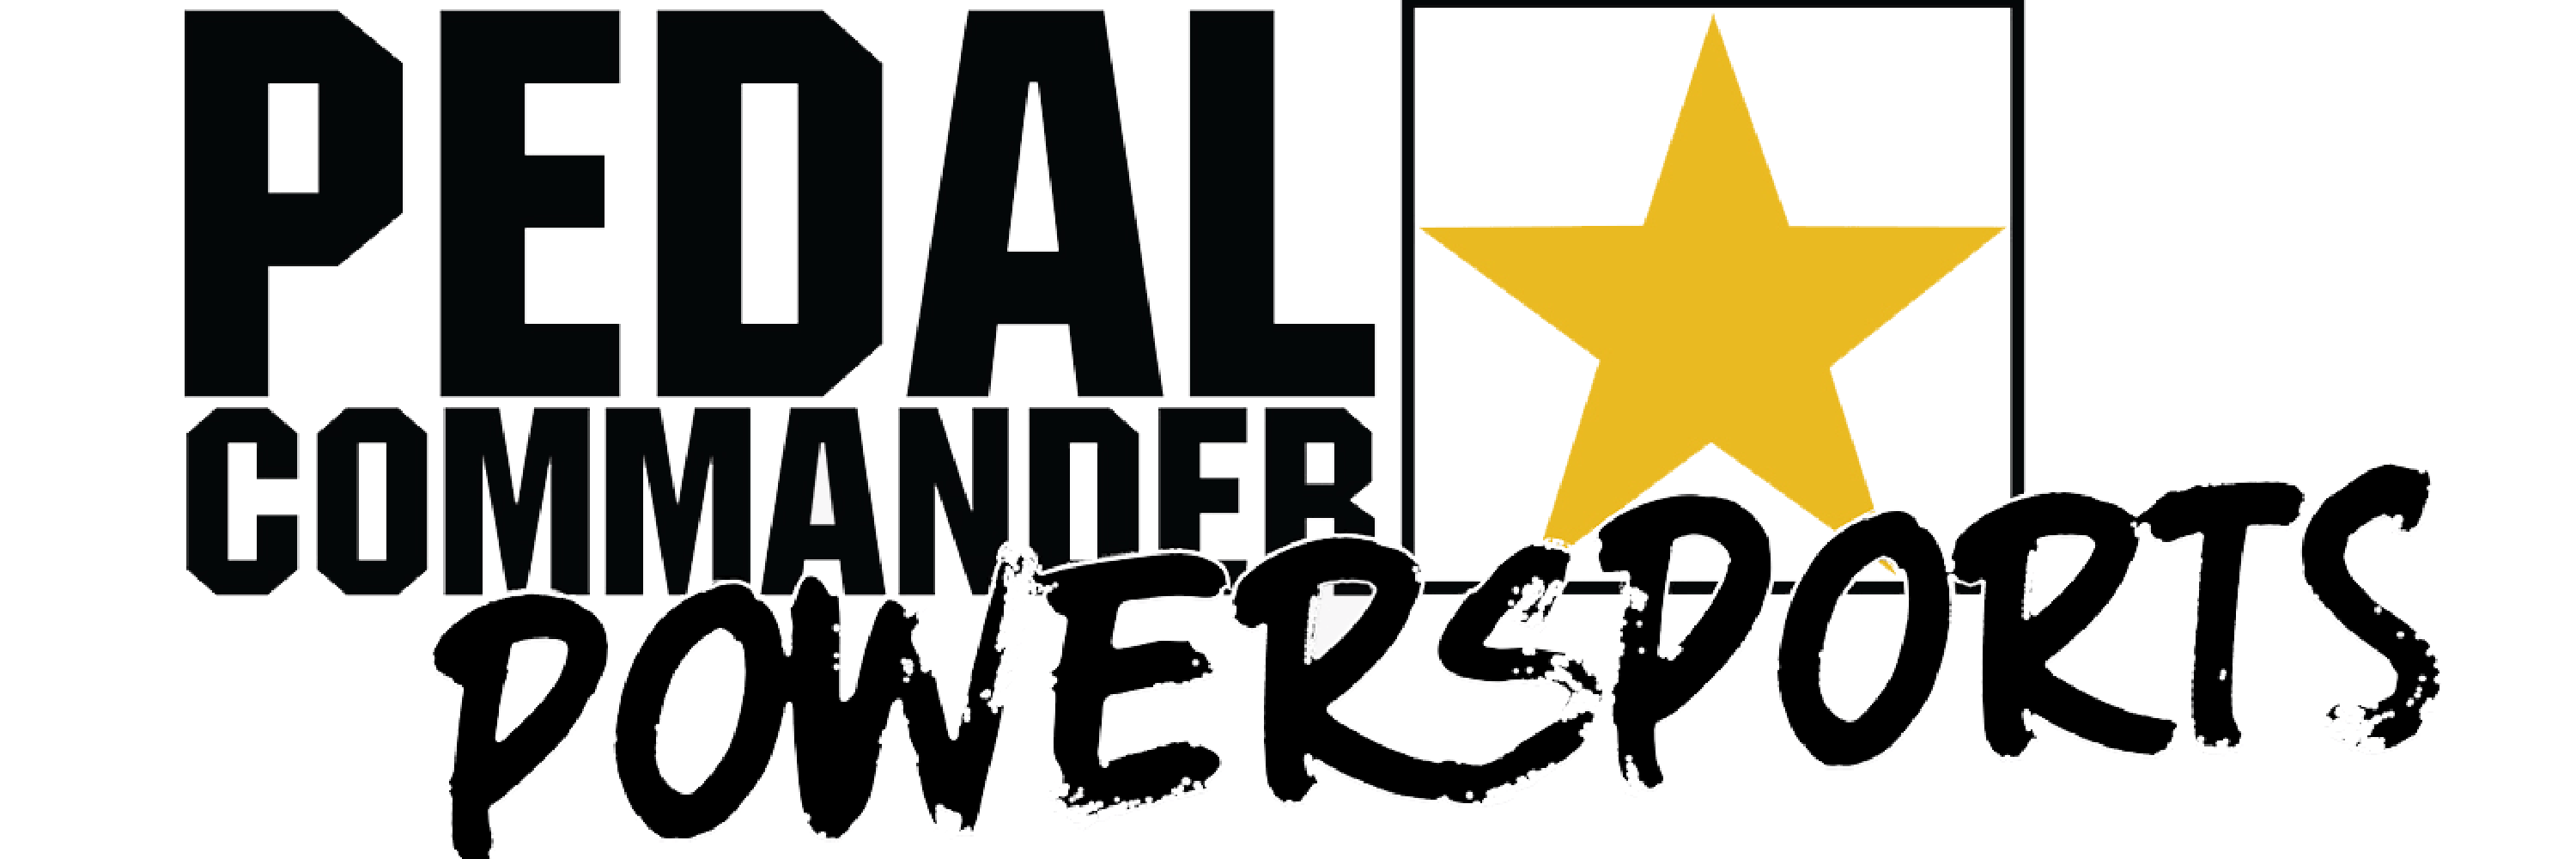 Pedal Commander Powersports Logo